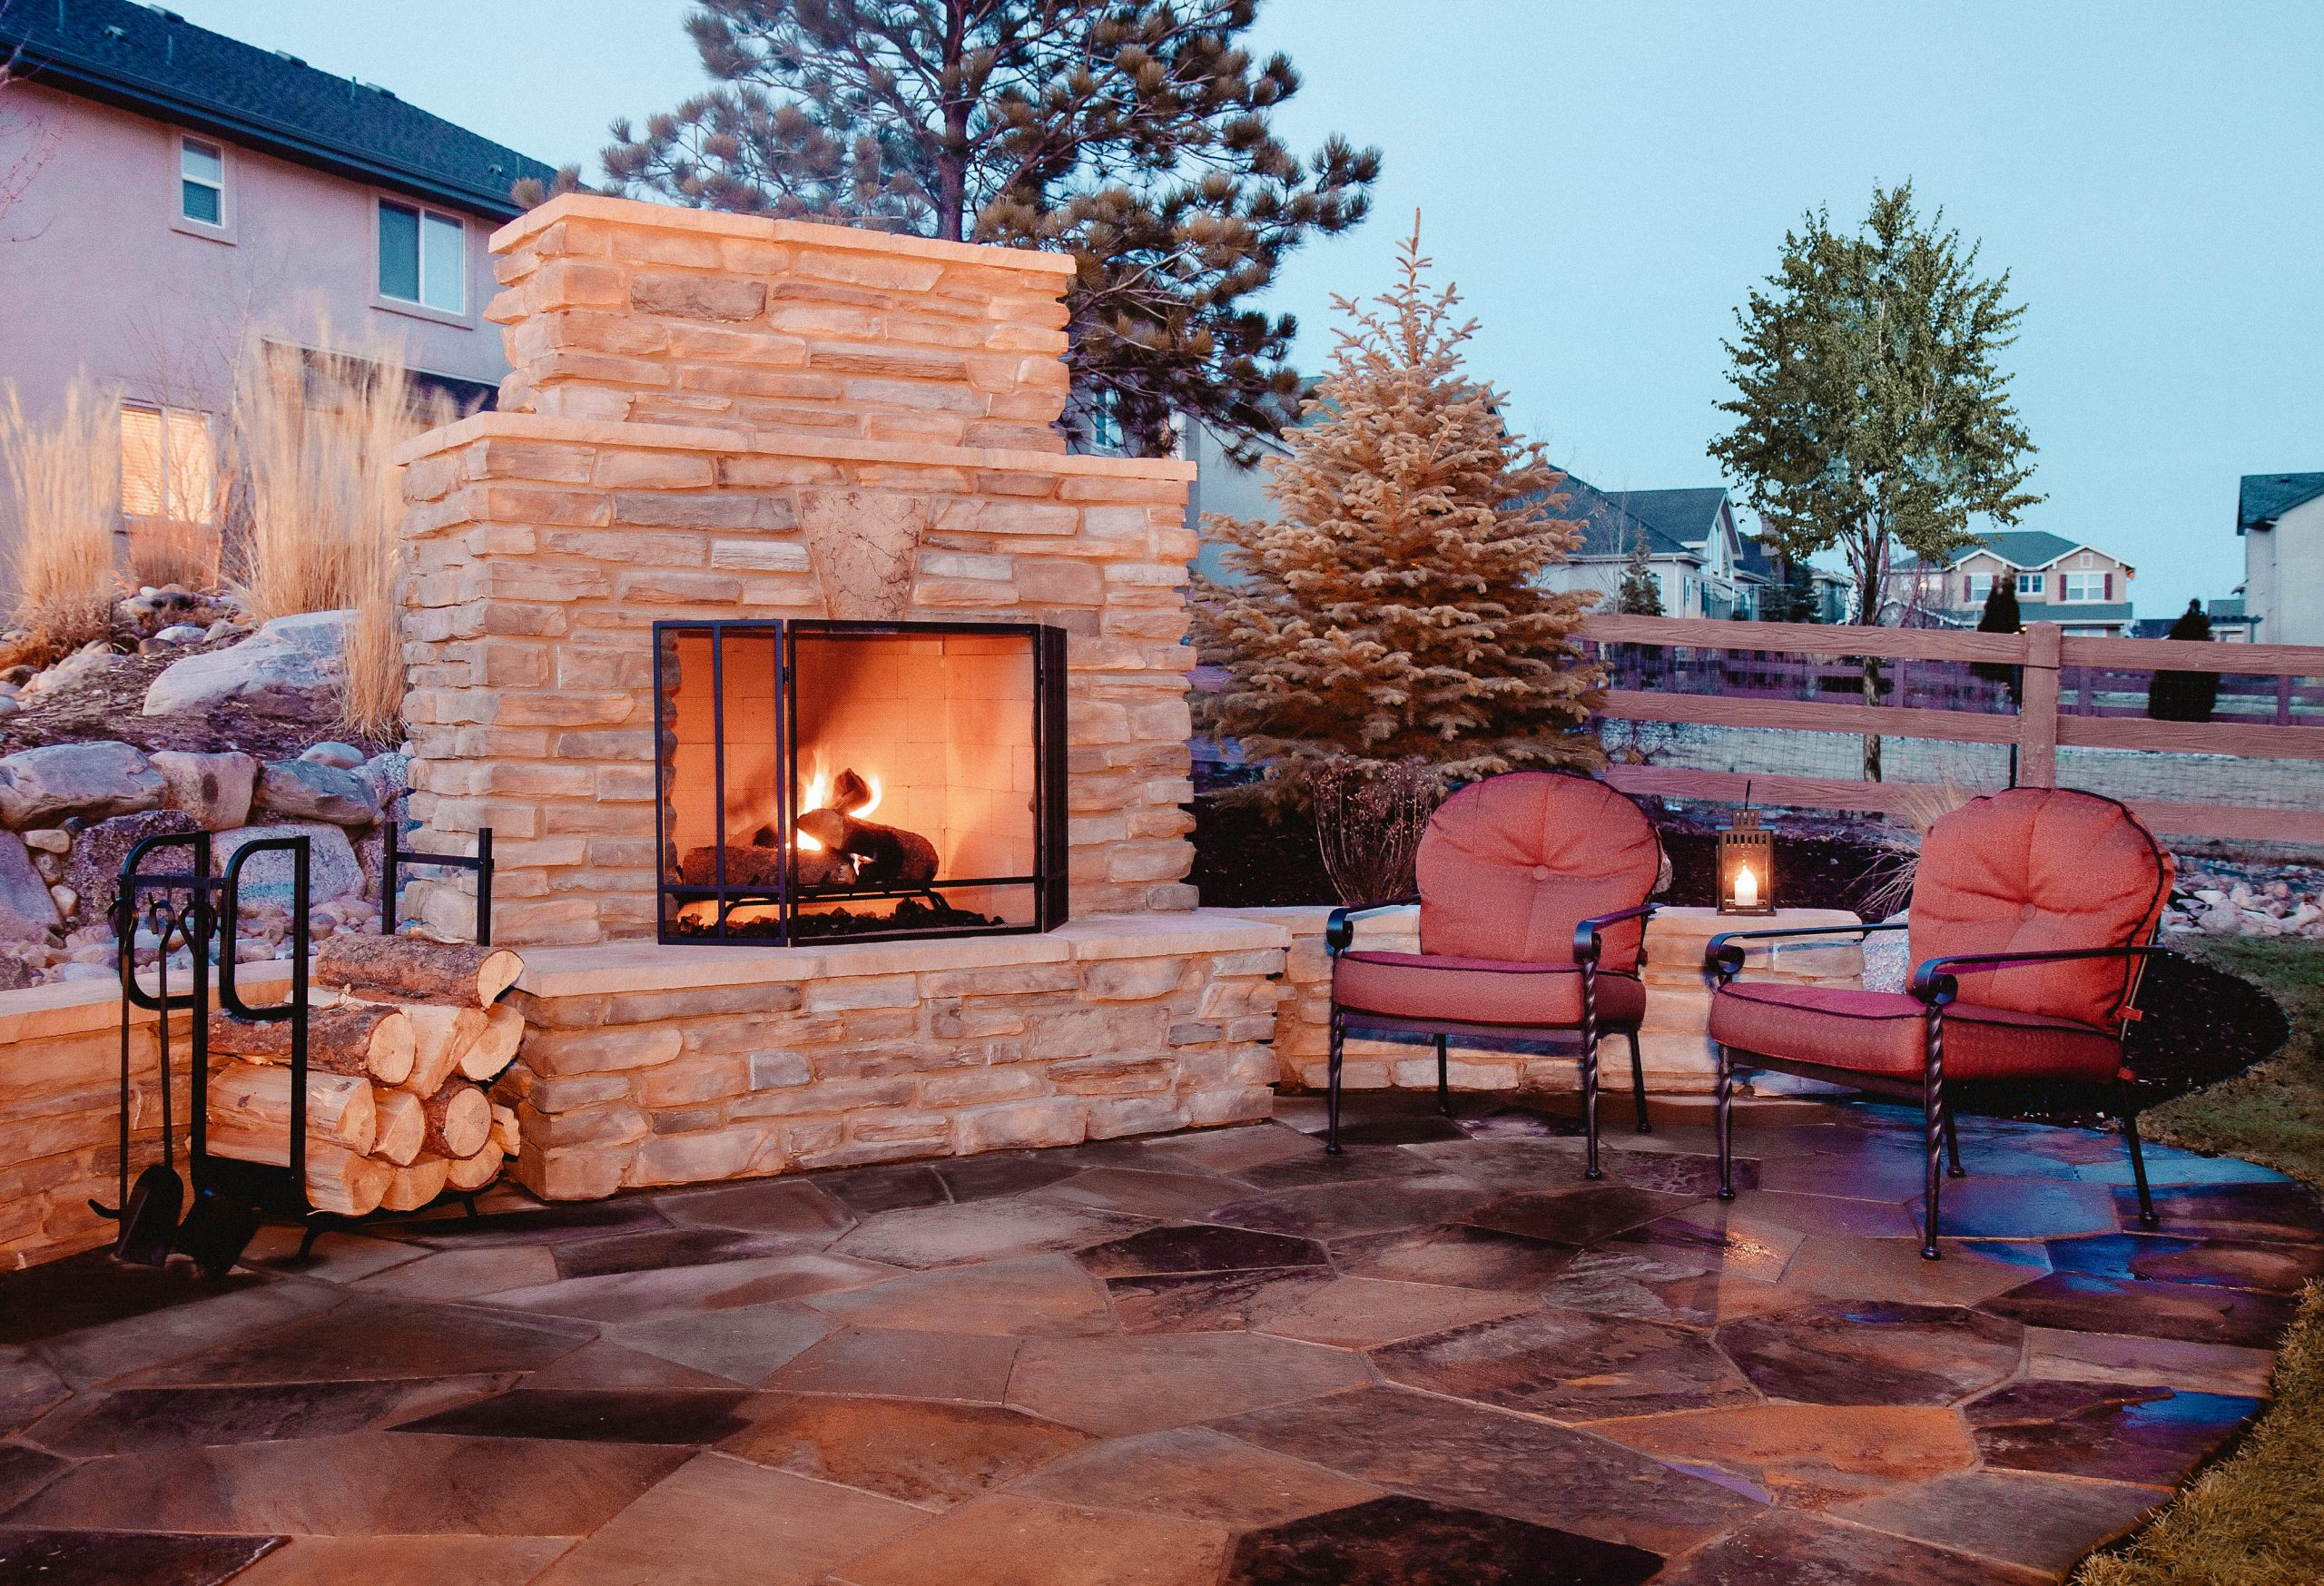 You can see an outdoor flagstone platform with fireplace, chairs